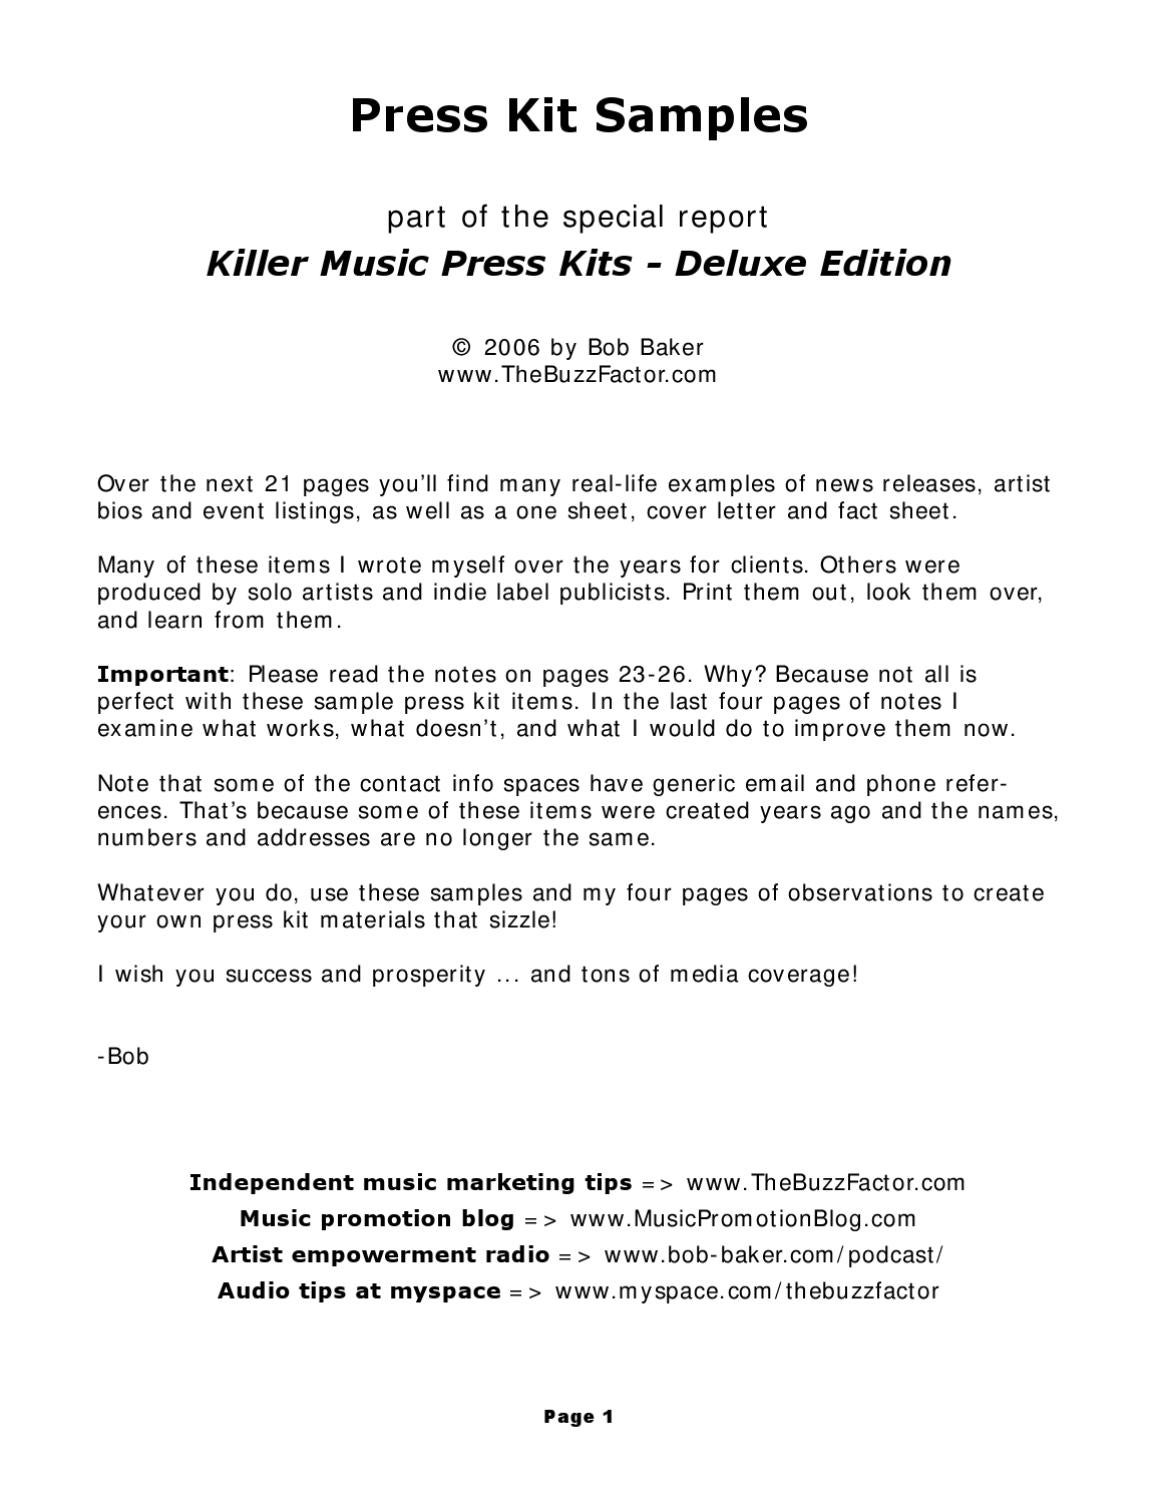 Press Kit For Artist Killer Press Kits By Franklin Management Llc Issuu